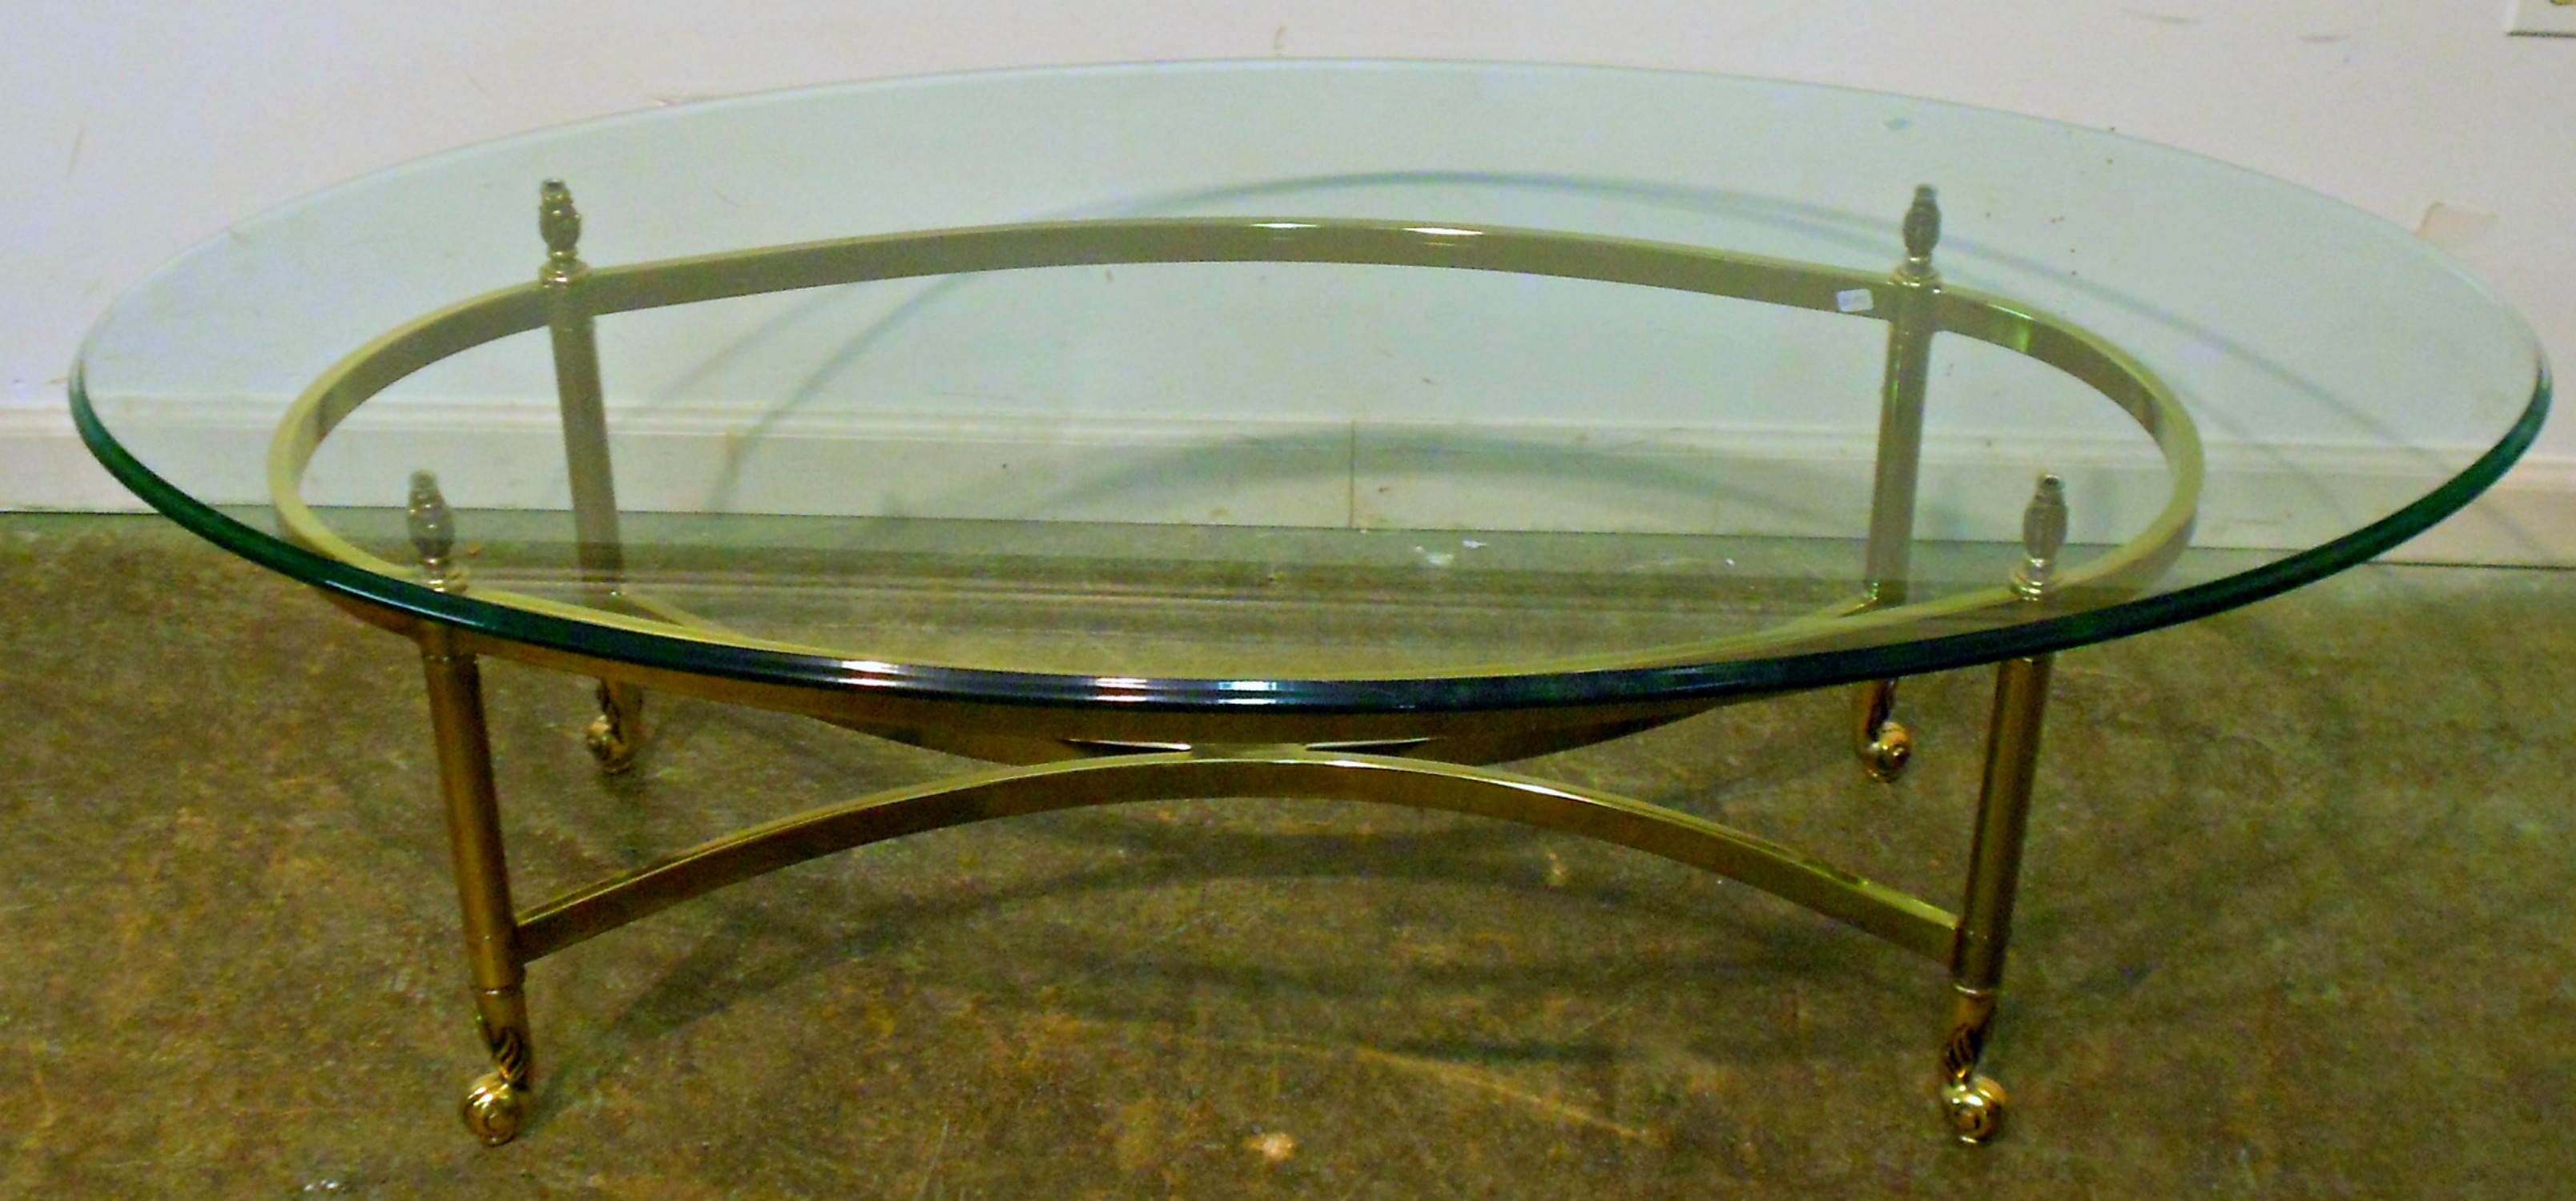 Oval Coffee Table Glass Top Furniture Oval Glass Top Coffee Table With Brass Frame And Wheels For Contemporary Living Room Spaces Ideas Wood (Image 2 of 10)